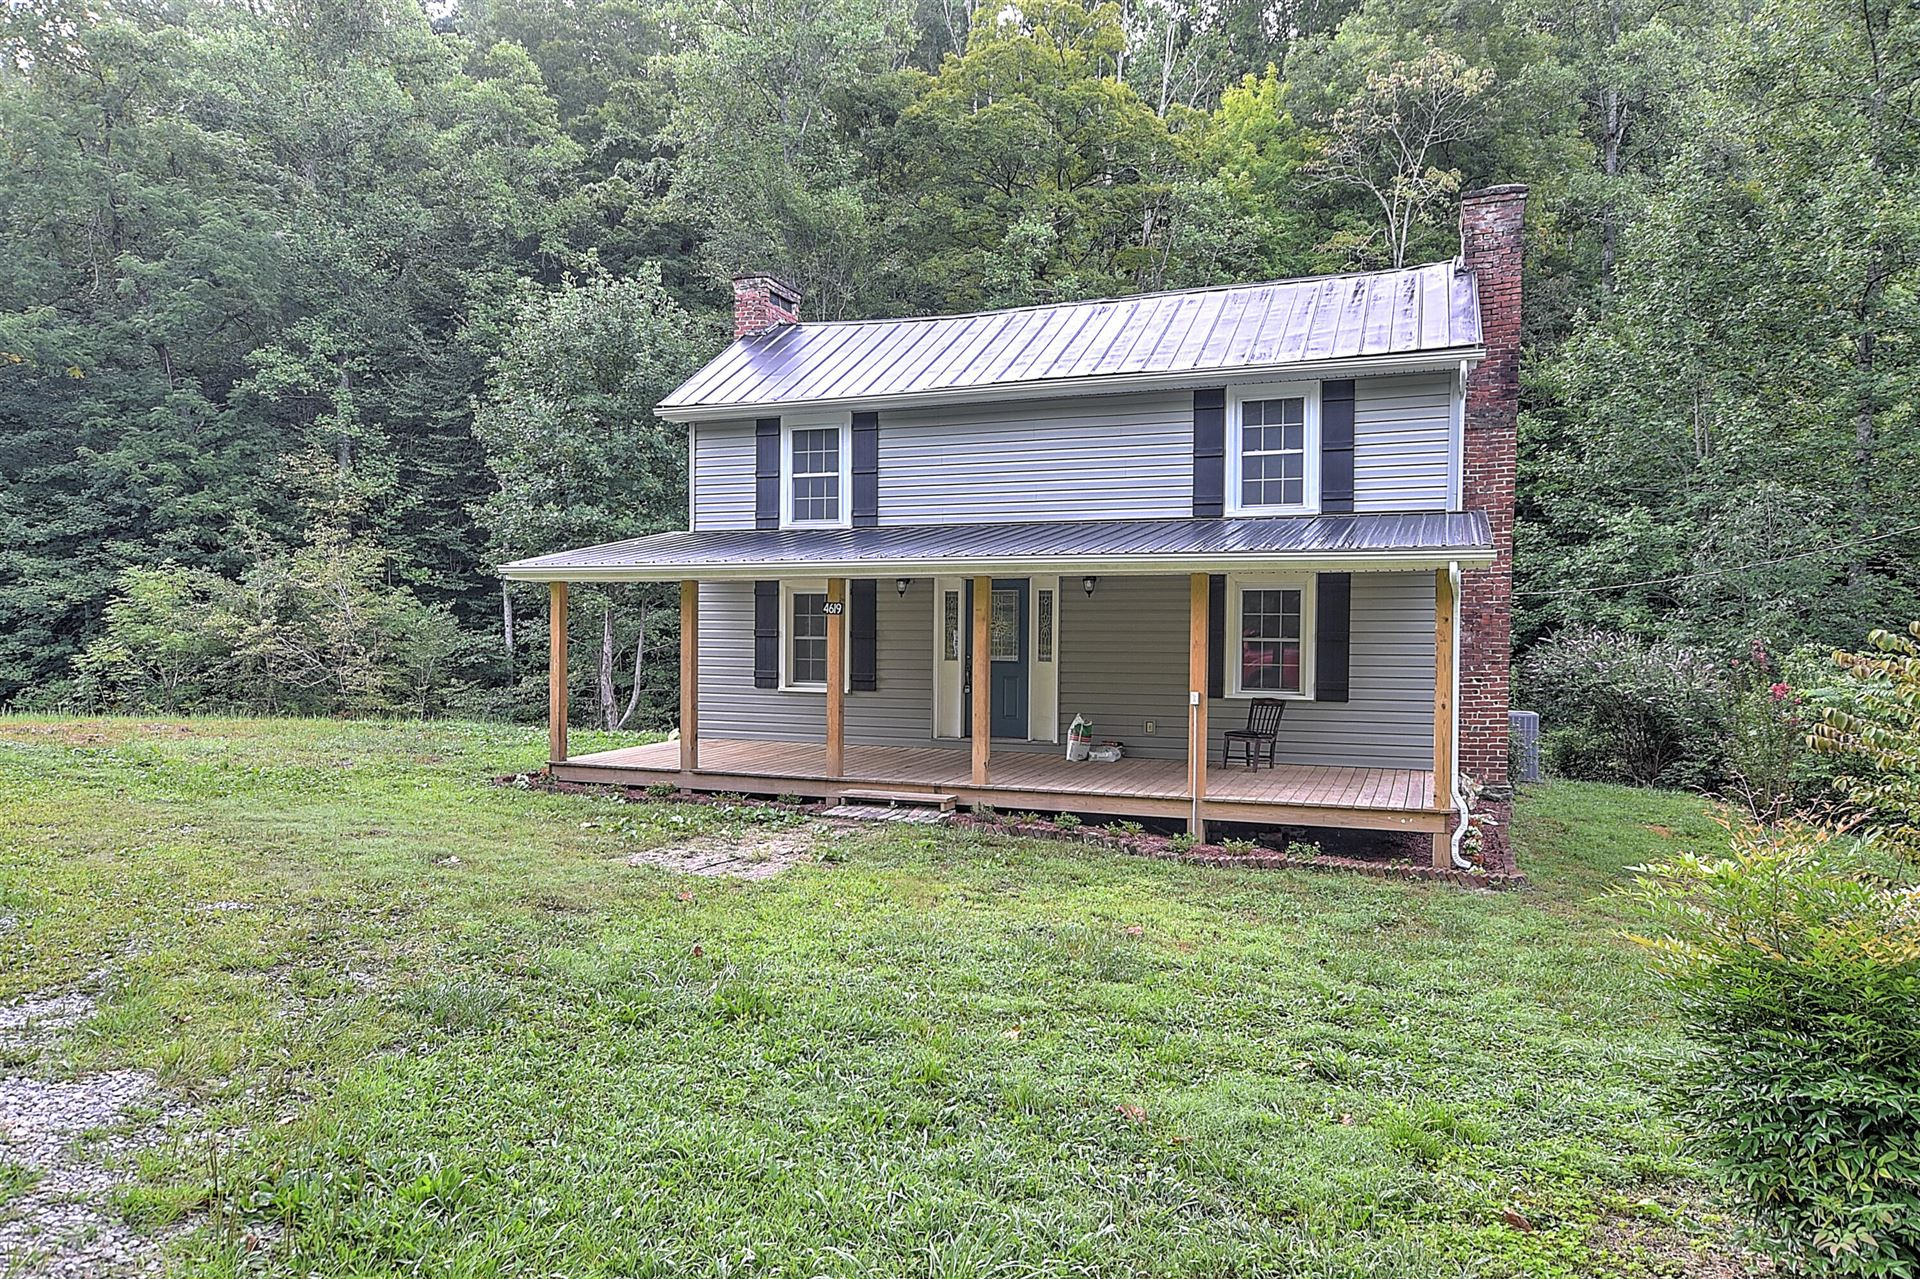 Photo of 4619 Natural Tunnel Parkway, Duffield, VA 24244 (MLS # 9927916)